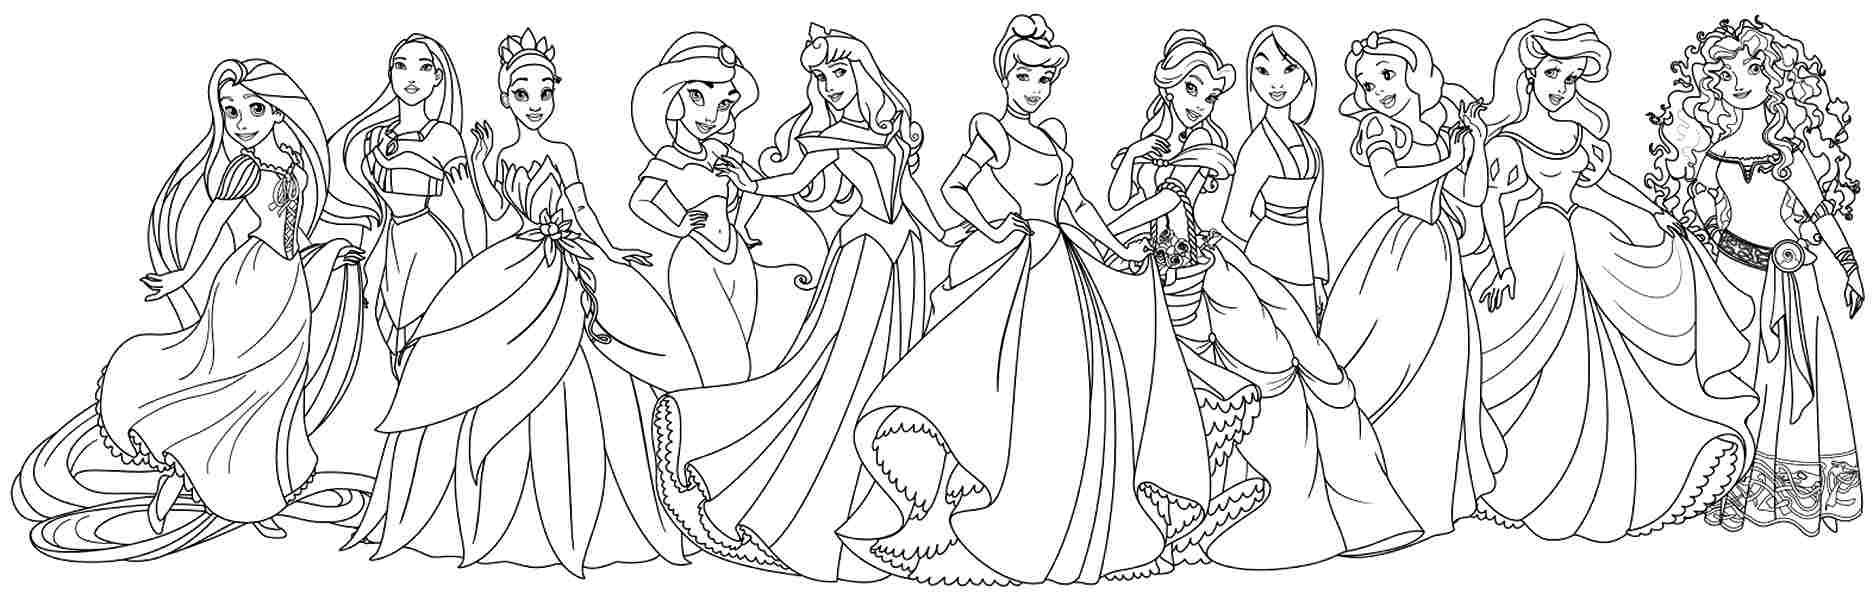 coloring pages for girls 13 and up 05 | Disney SVG Files | Pinterest